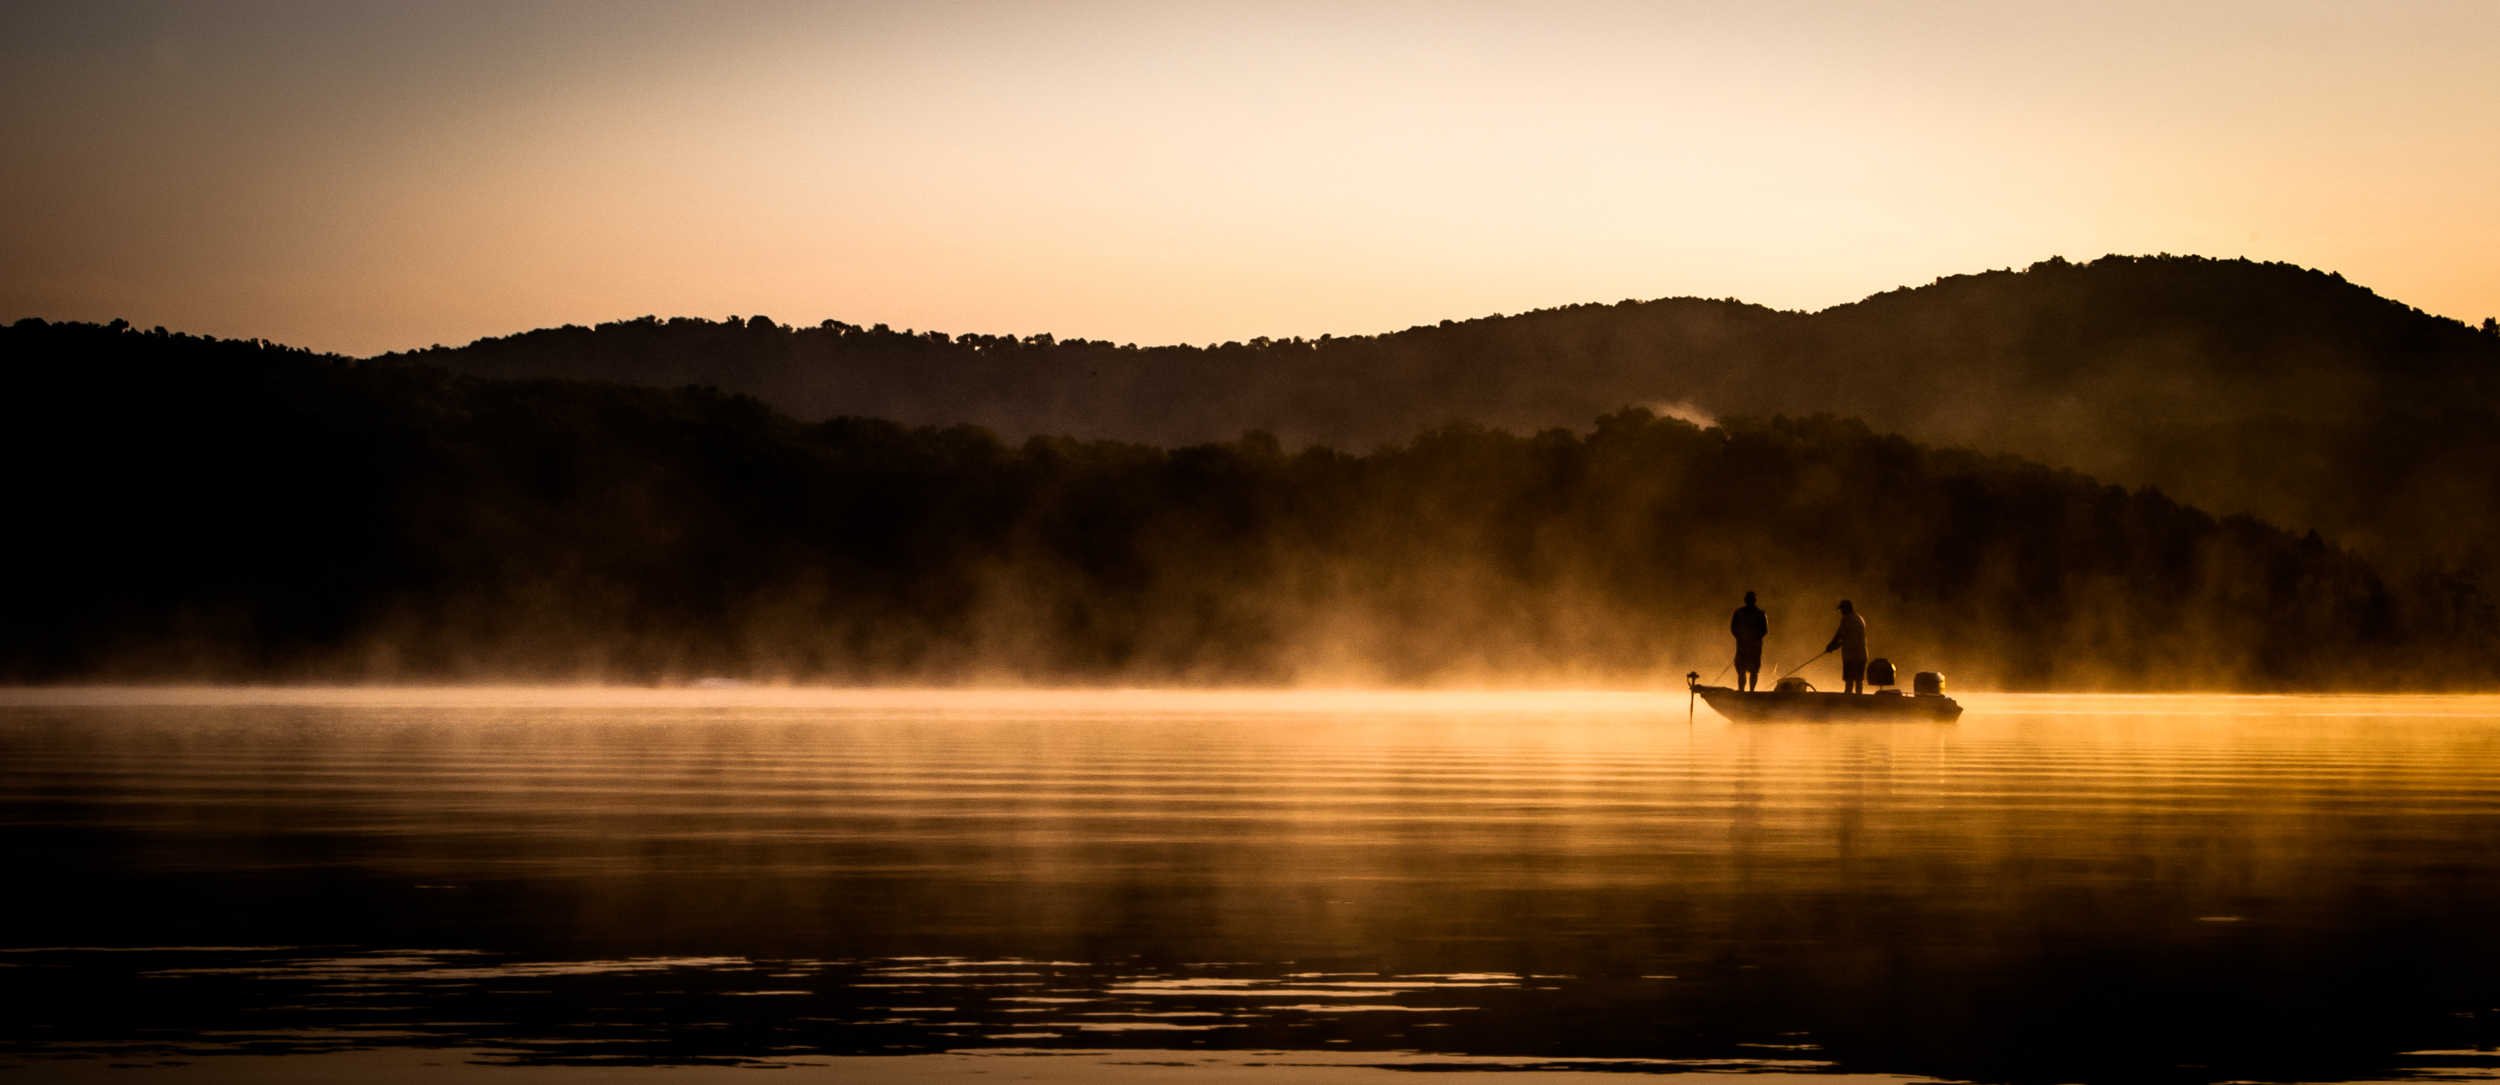 Photograph of two fishermen in a bass boat in silhouette at Sunrise on Table Rock Lake Missouri